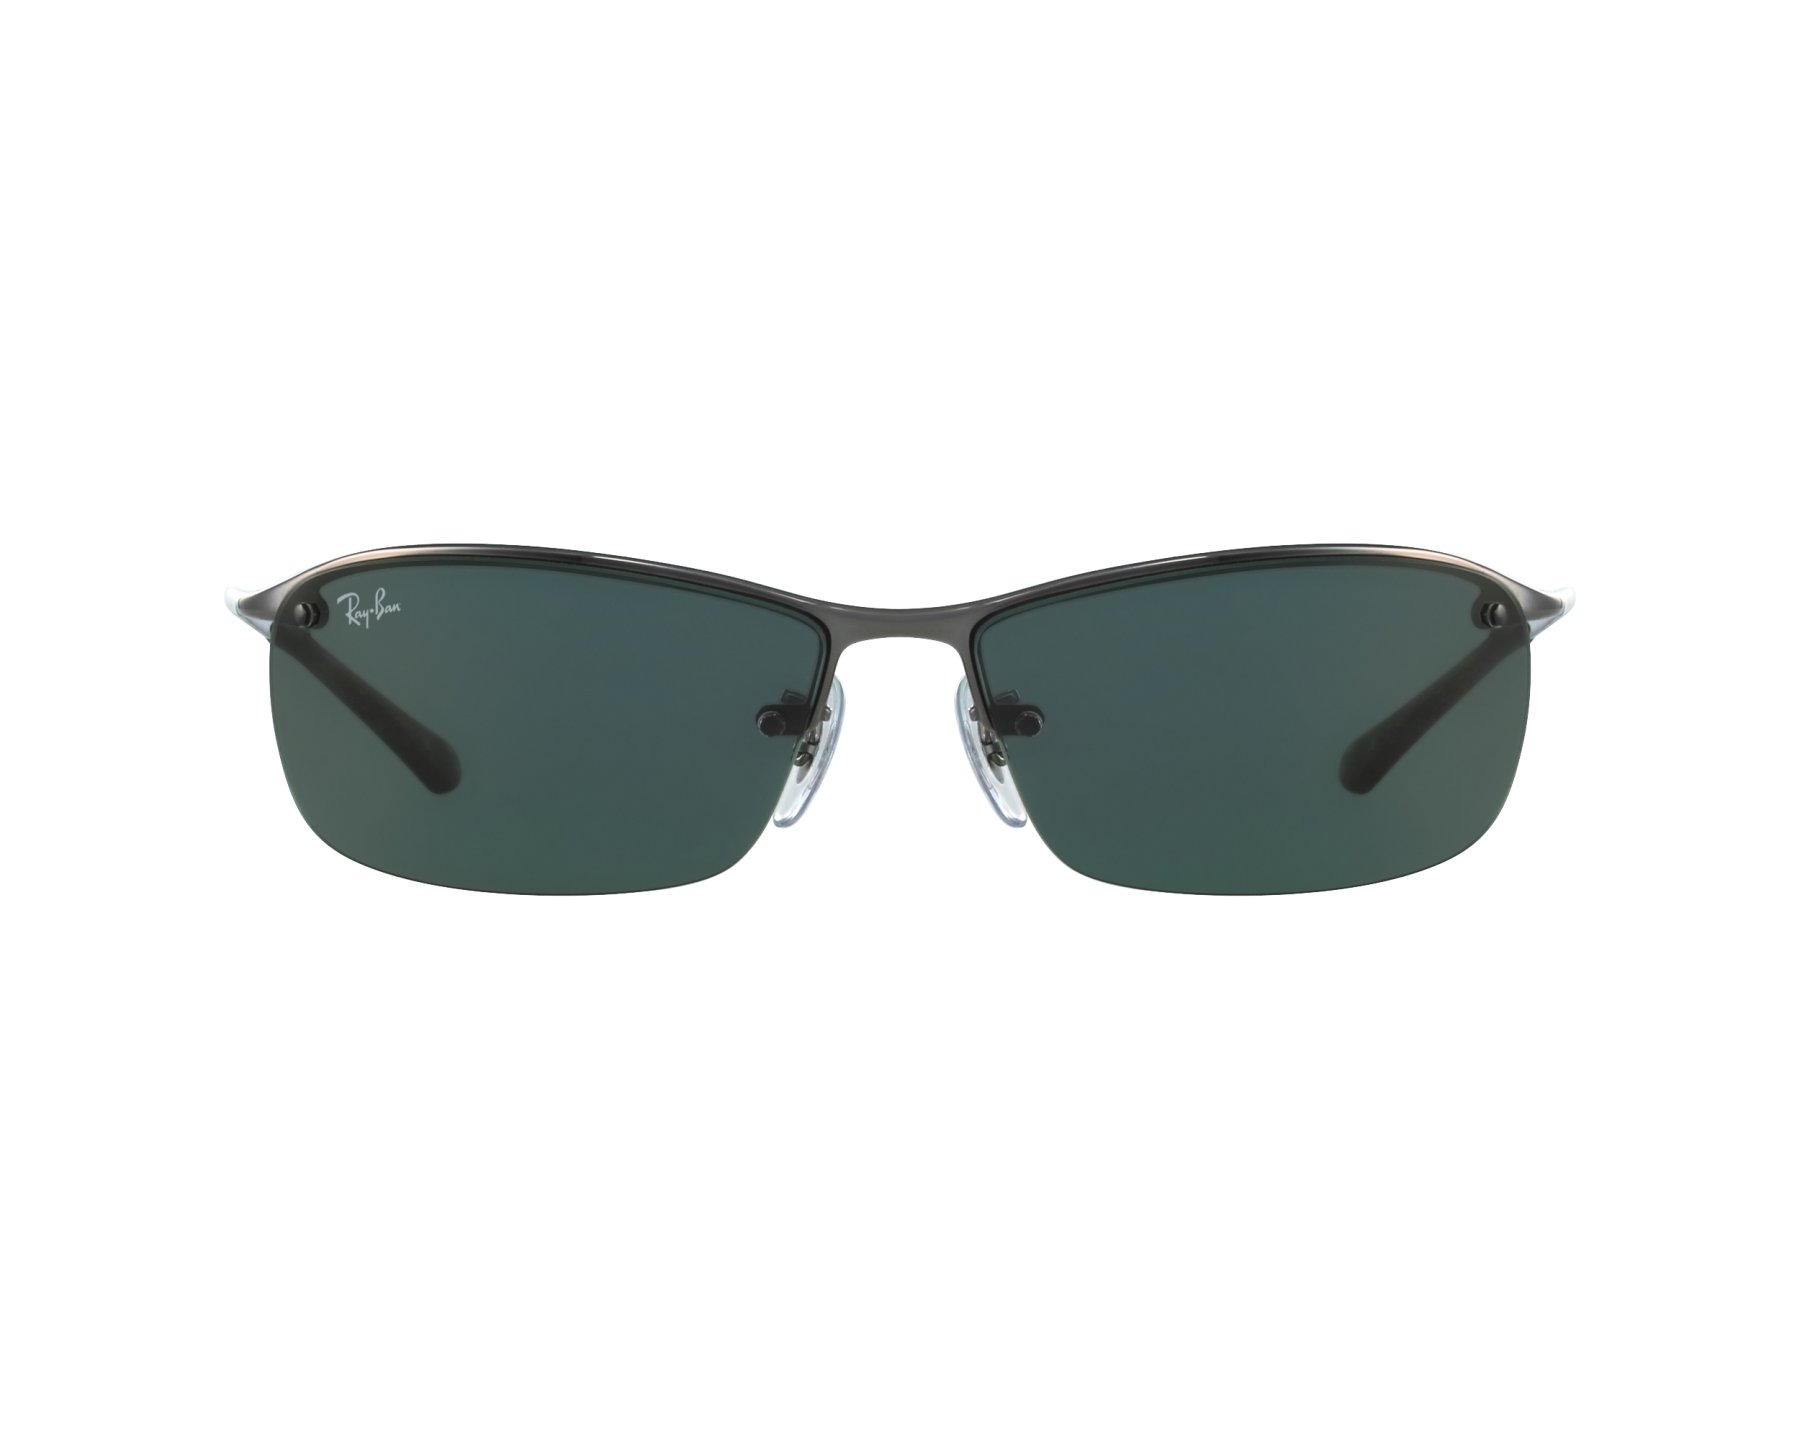 9efe3656cc Sunglasses Ray-Ban RB-3183 004 71 63-15 Gun profile view